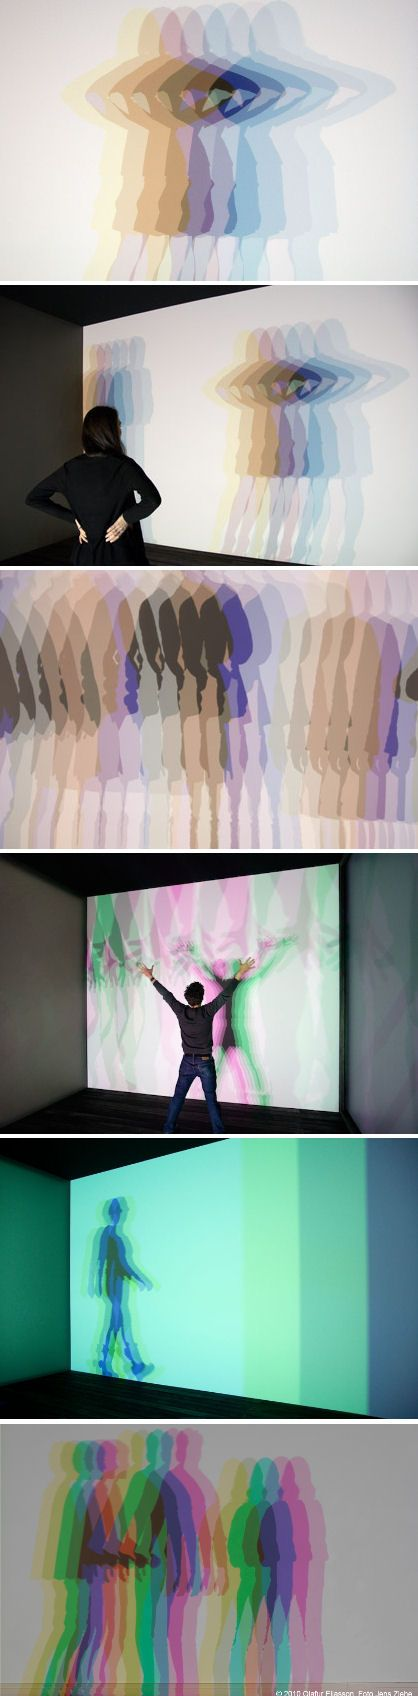 Olafur Eliasson, Multiple shadow house, 2010. When a body enters the space and begins to interact with the light installation